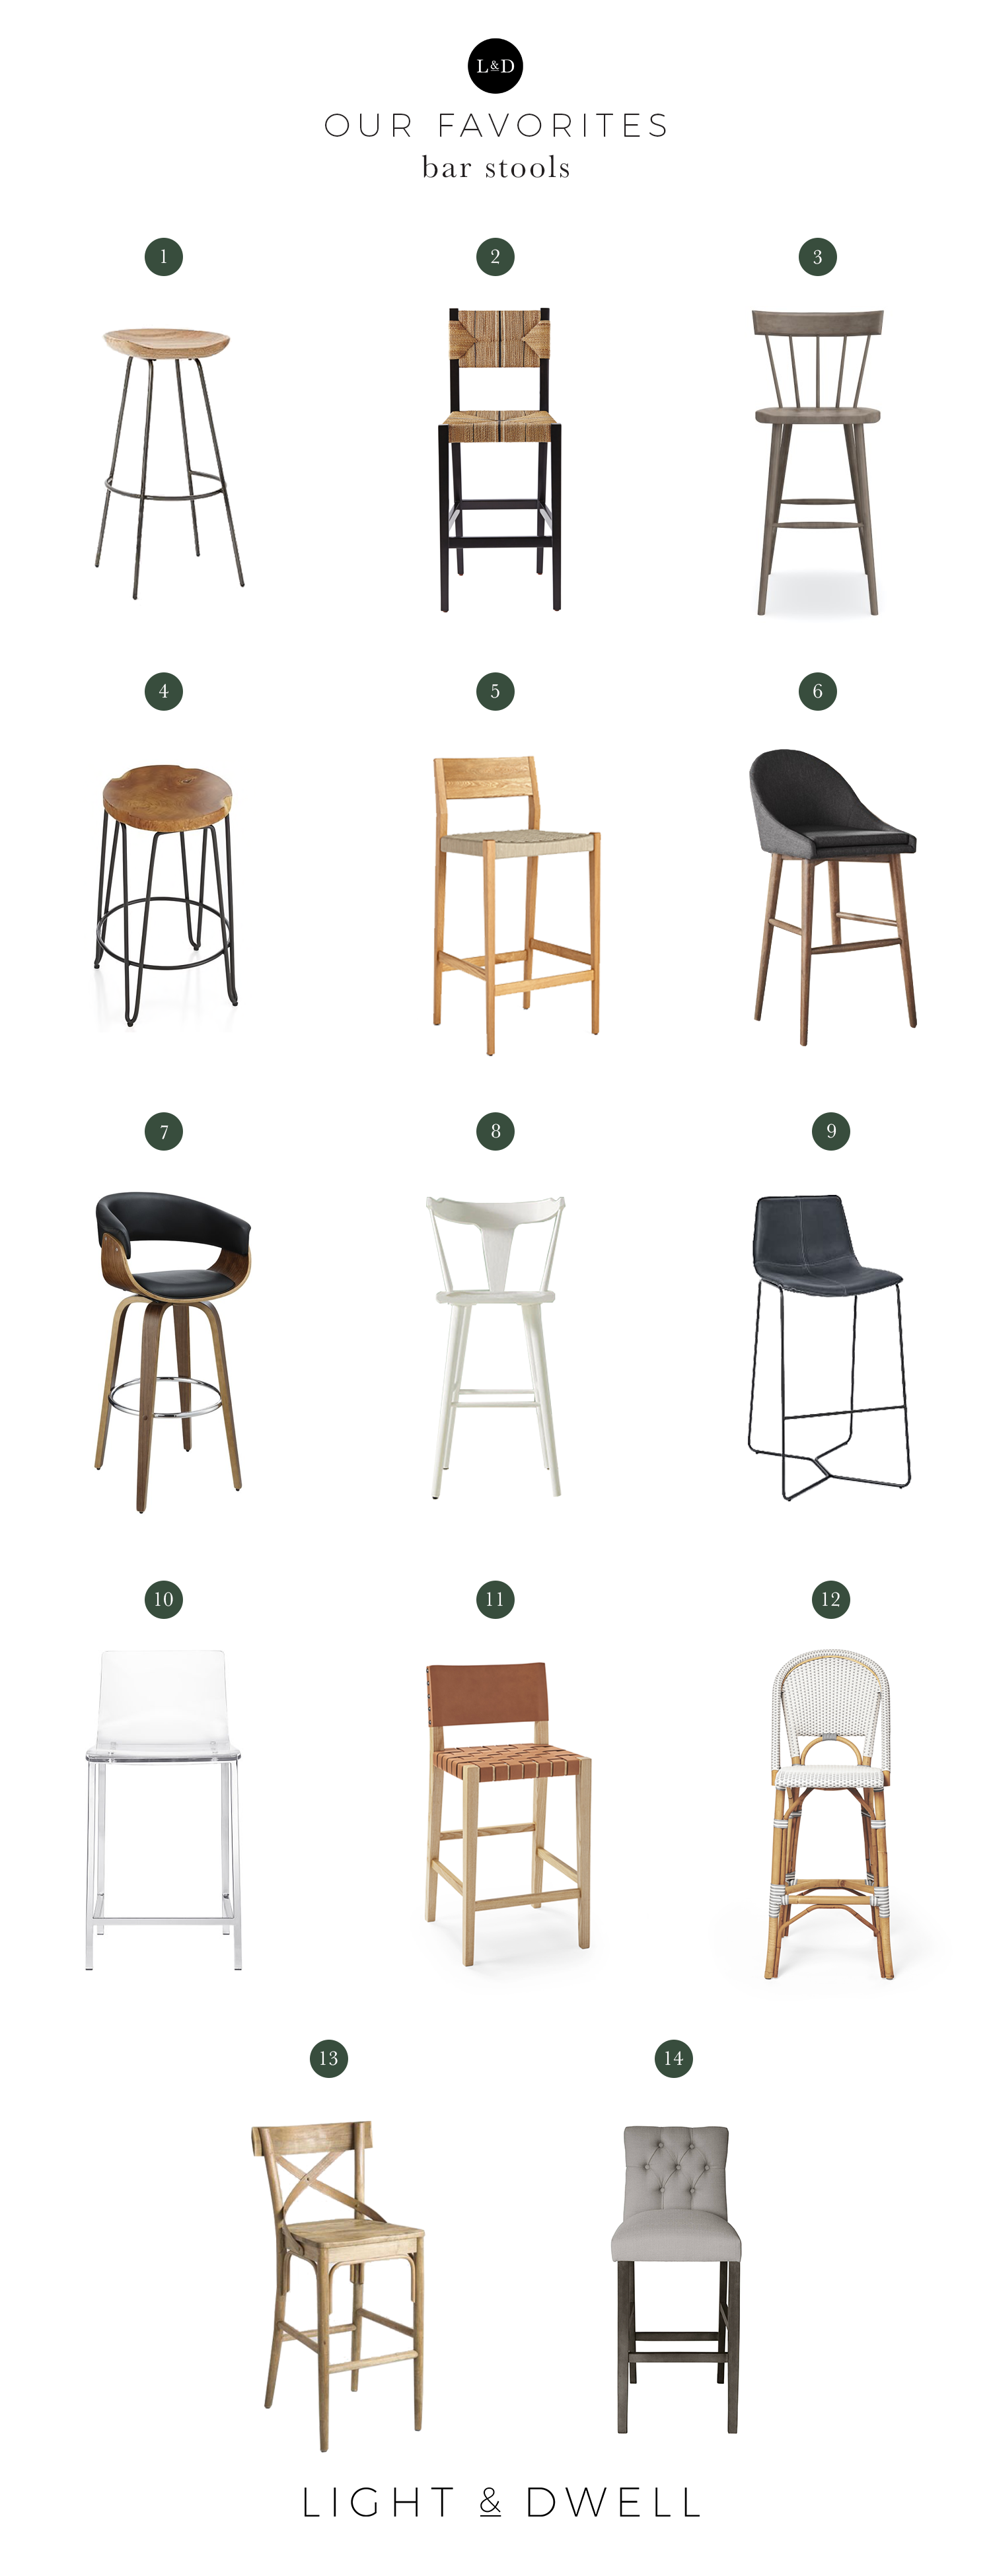 L+D_Our-Favorites_BarStools.png